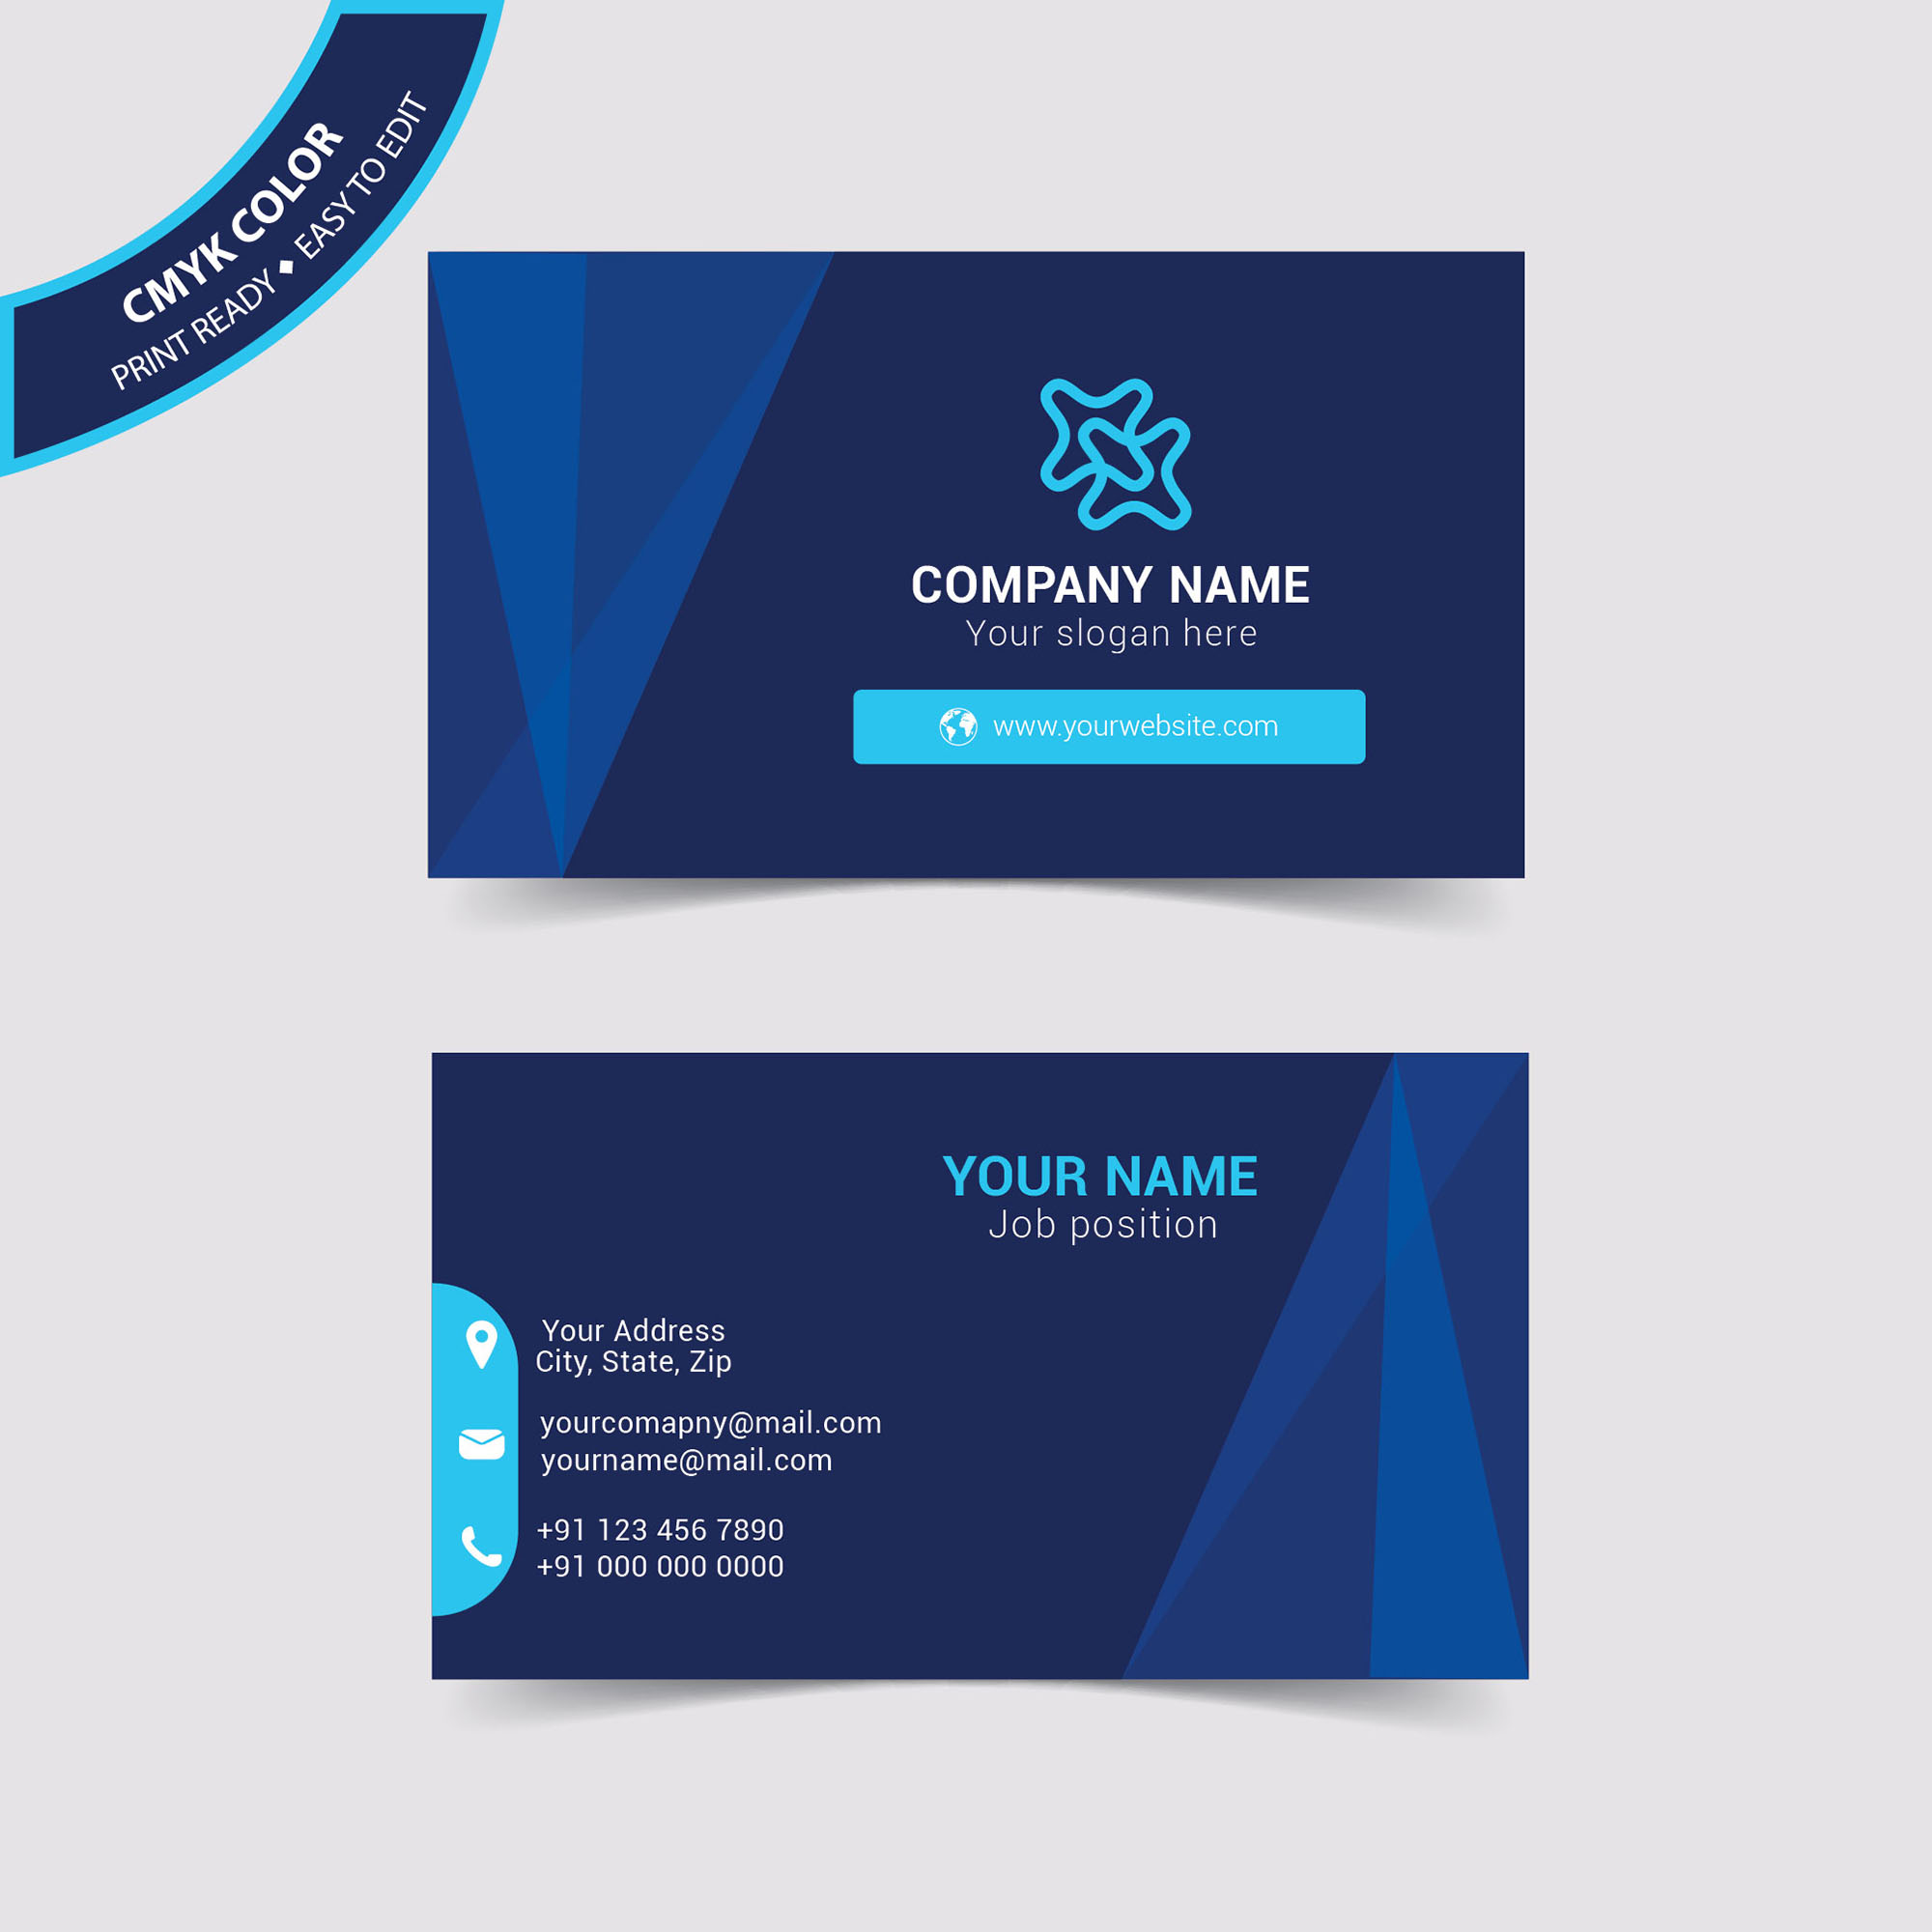 Blue creative business card design free download wisxi business card business cards business card design business card template design templates flashek